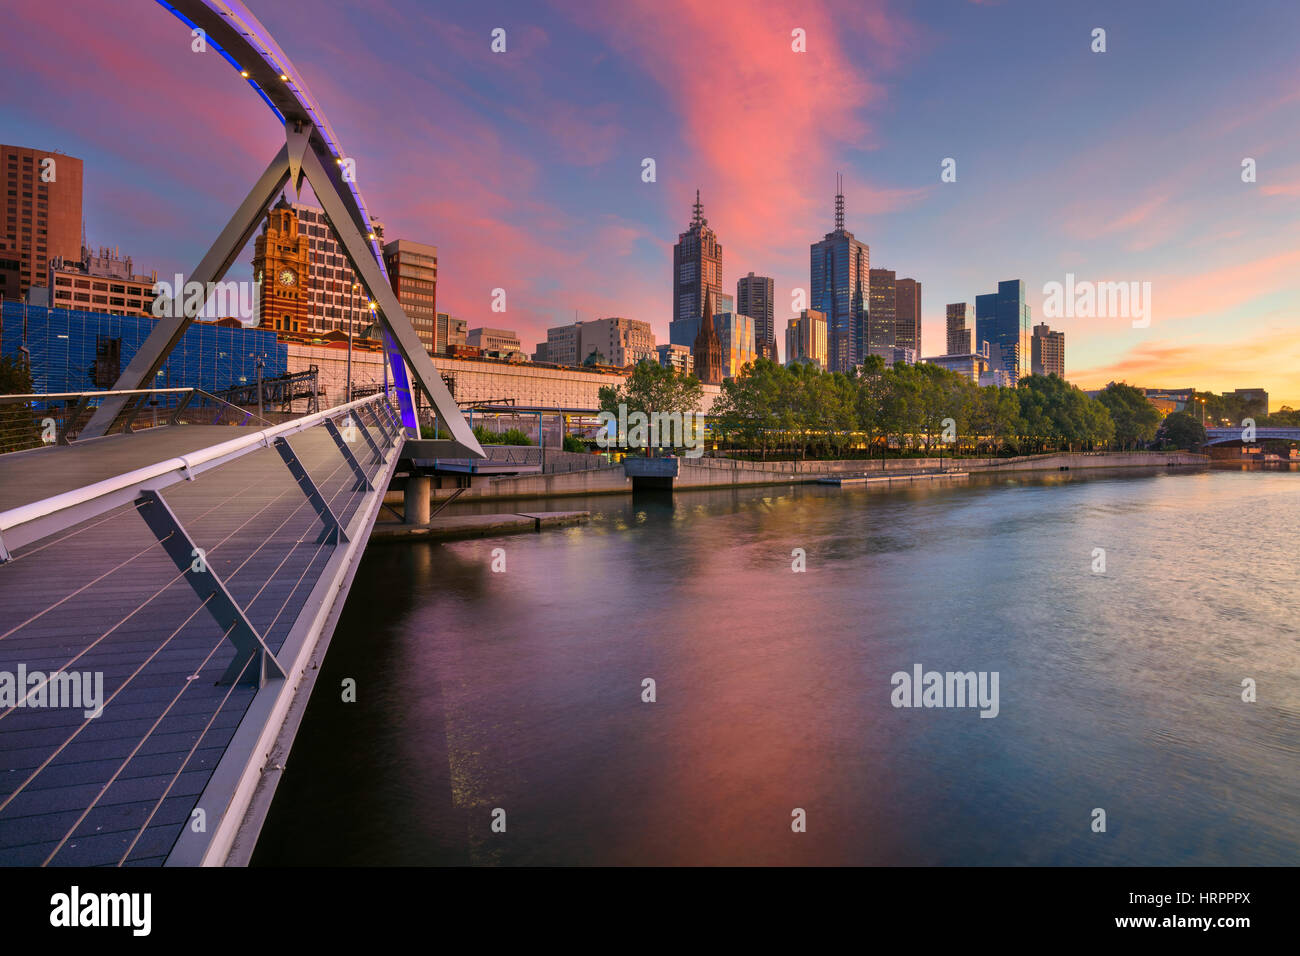 City of Melbourne. Cityscape image of Melbourne, Australia during summer sunrise. - Stock Image